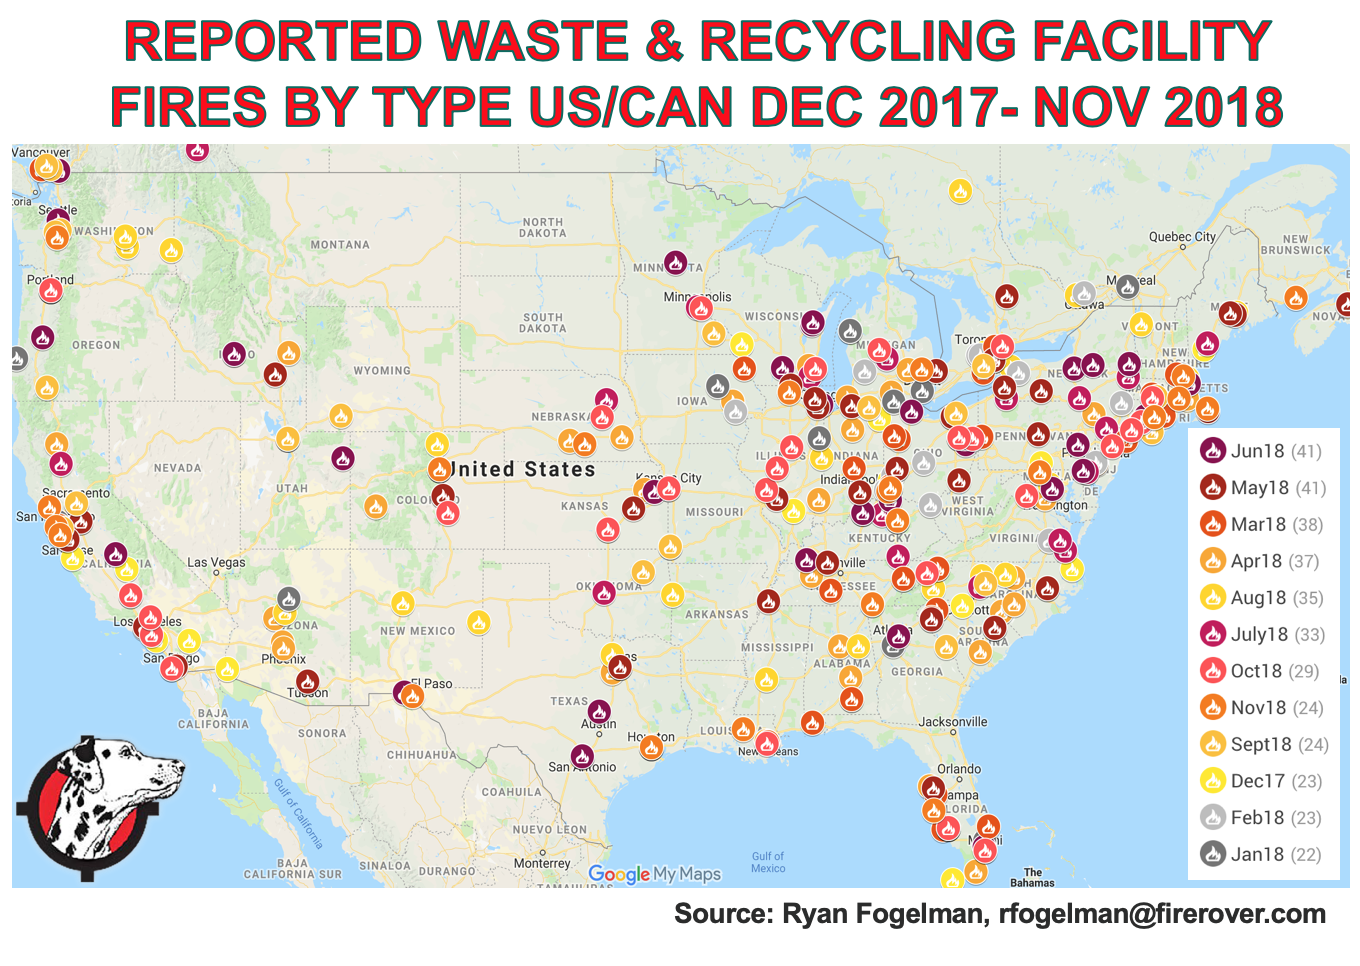 waste-recycling-facility-fire-map-november2018.png